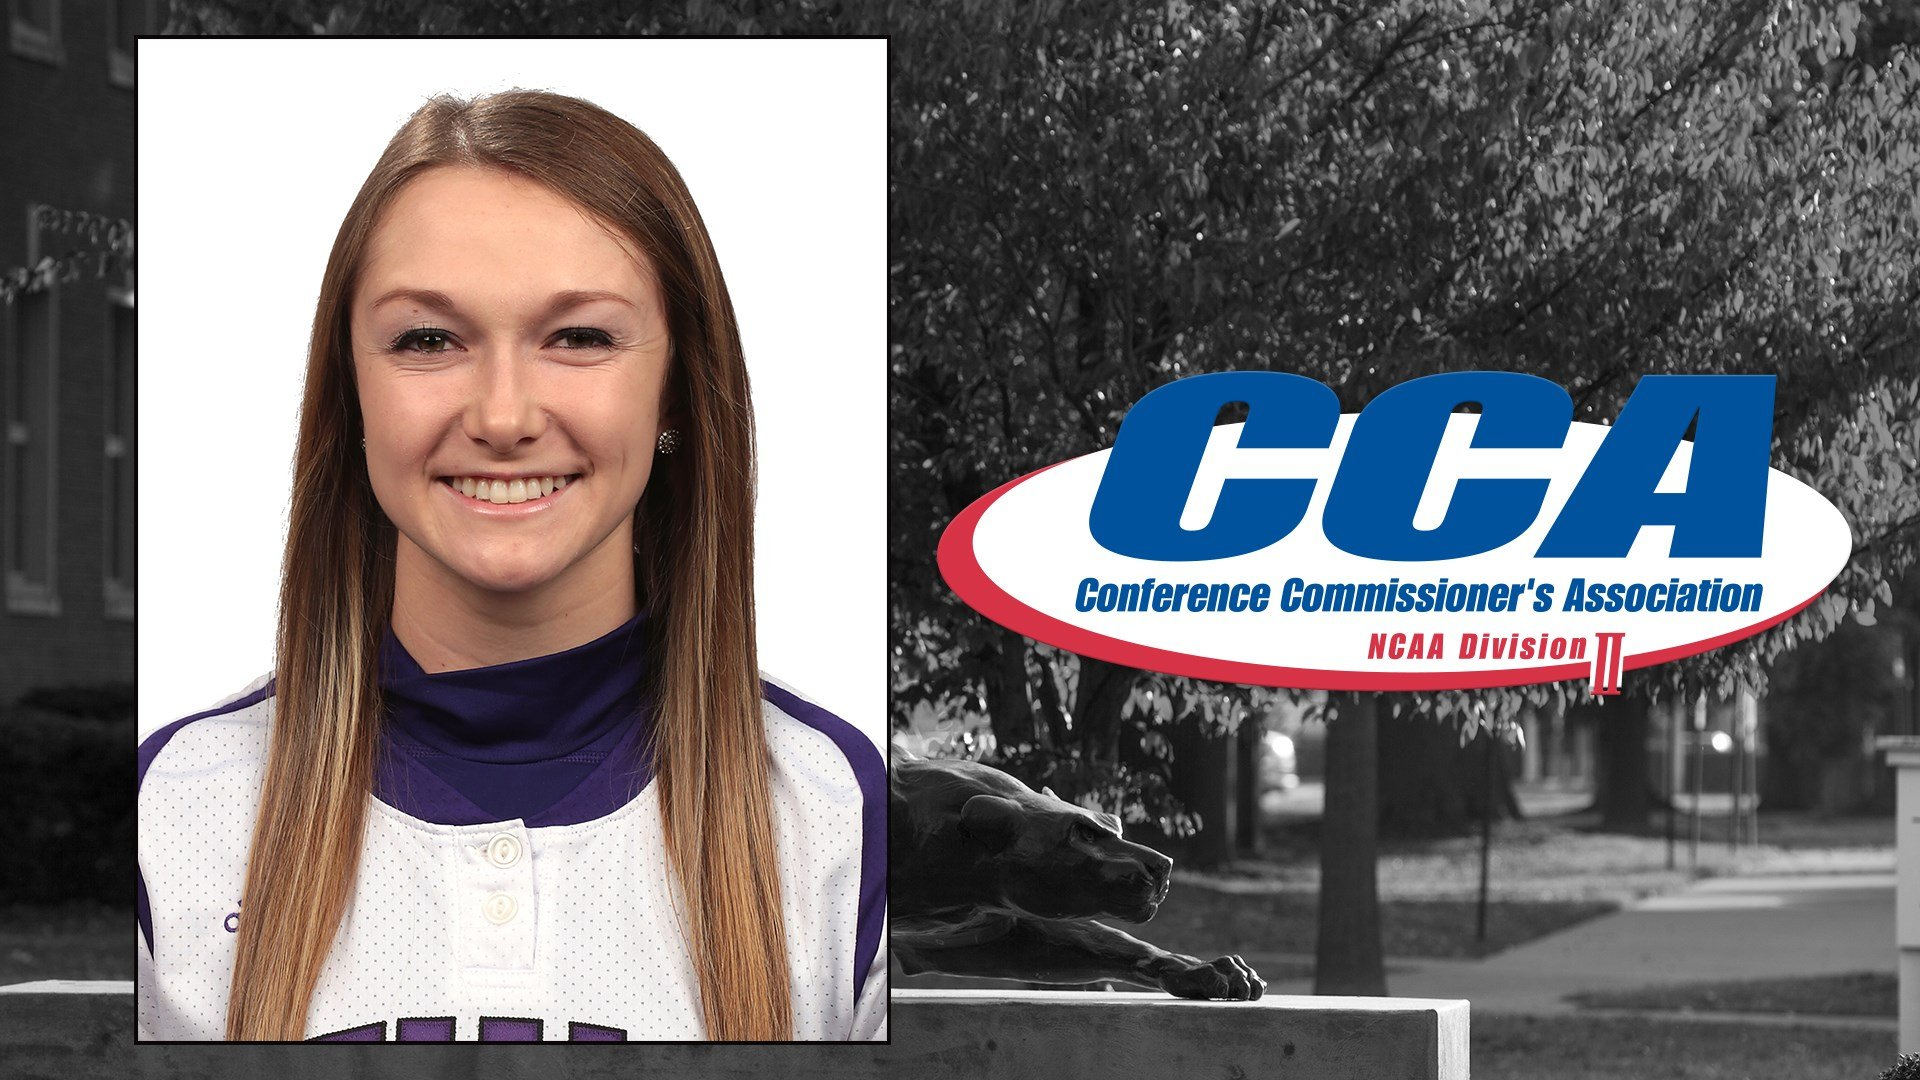 Champions of Change - Meredith Daunhauer Receives All American Honors